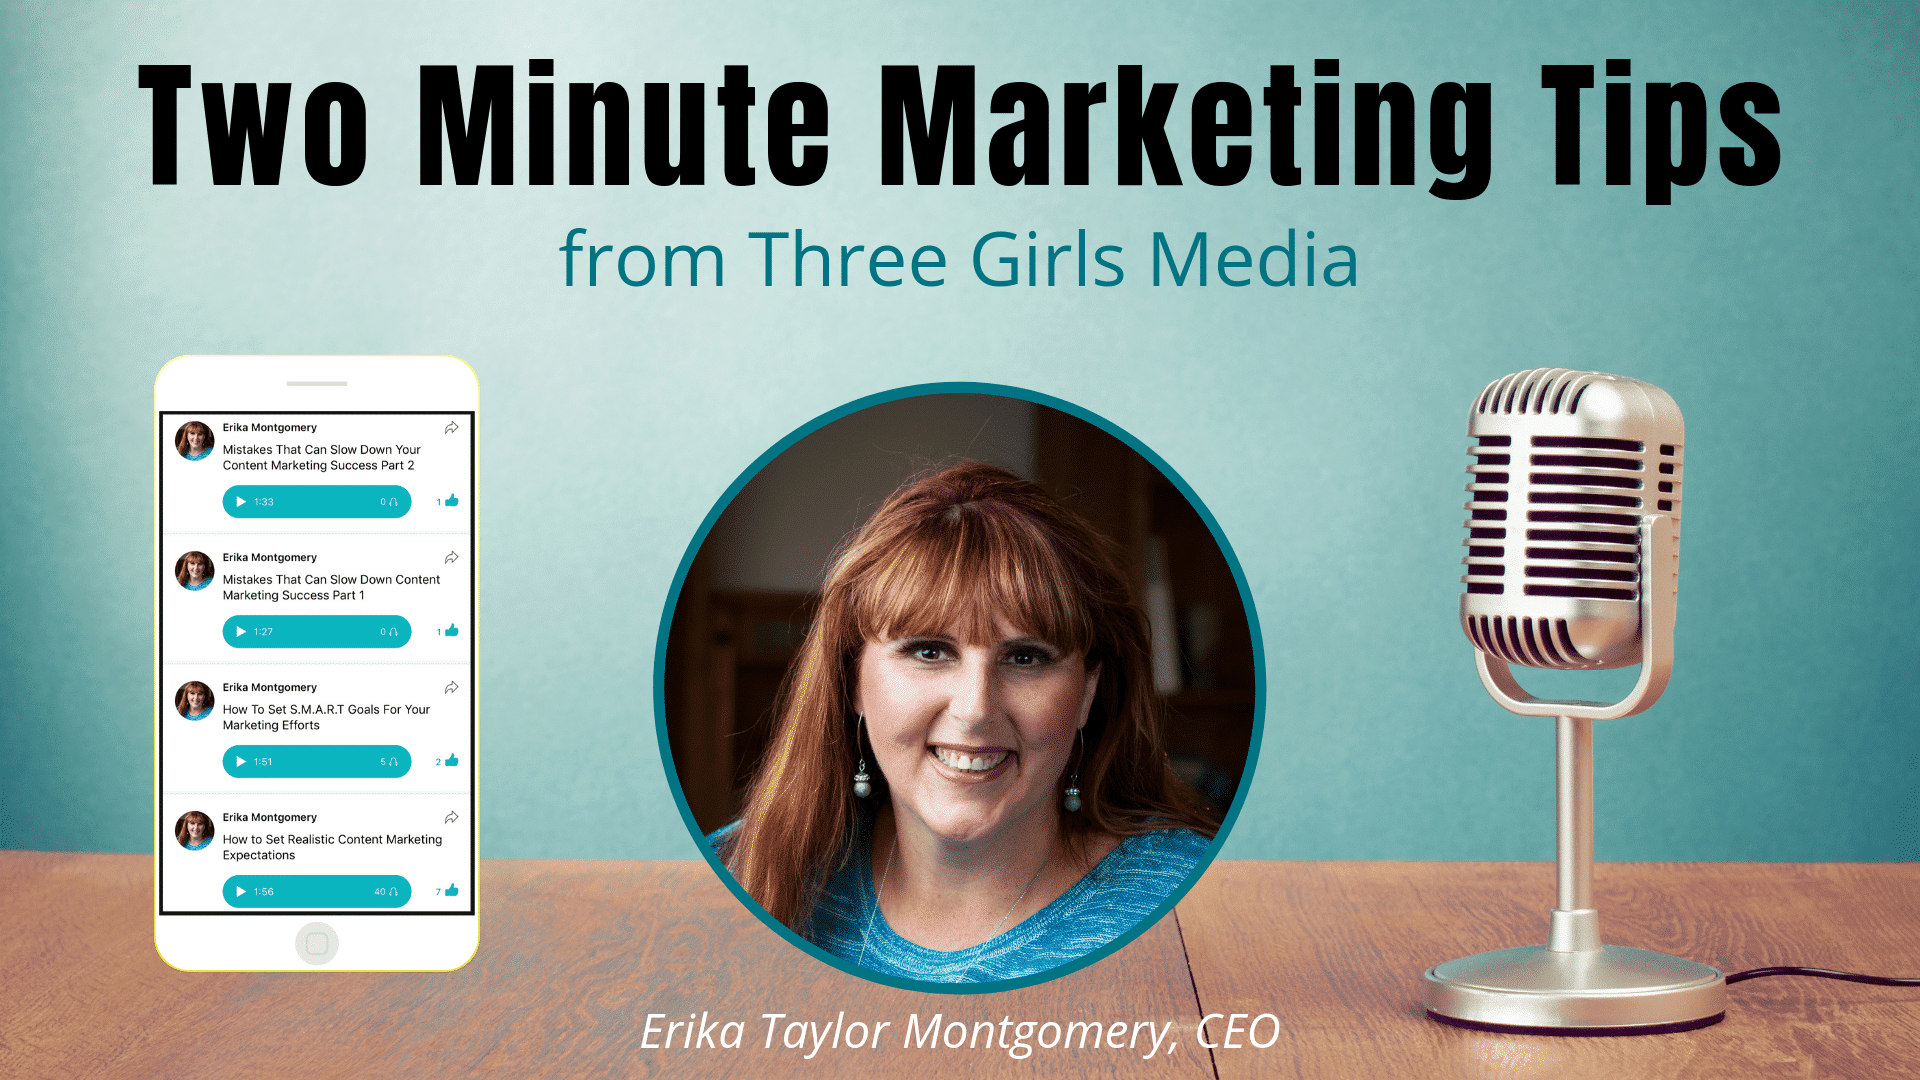 Two Minute Marketing Tips Social Media Marketing Strategies for Instagram & Pinterest